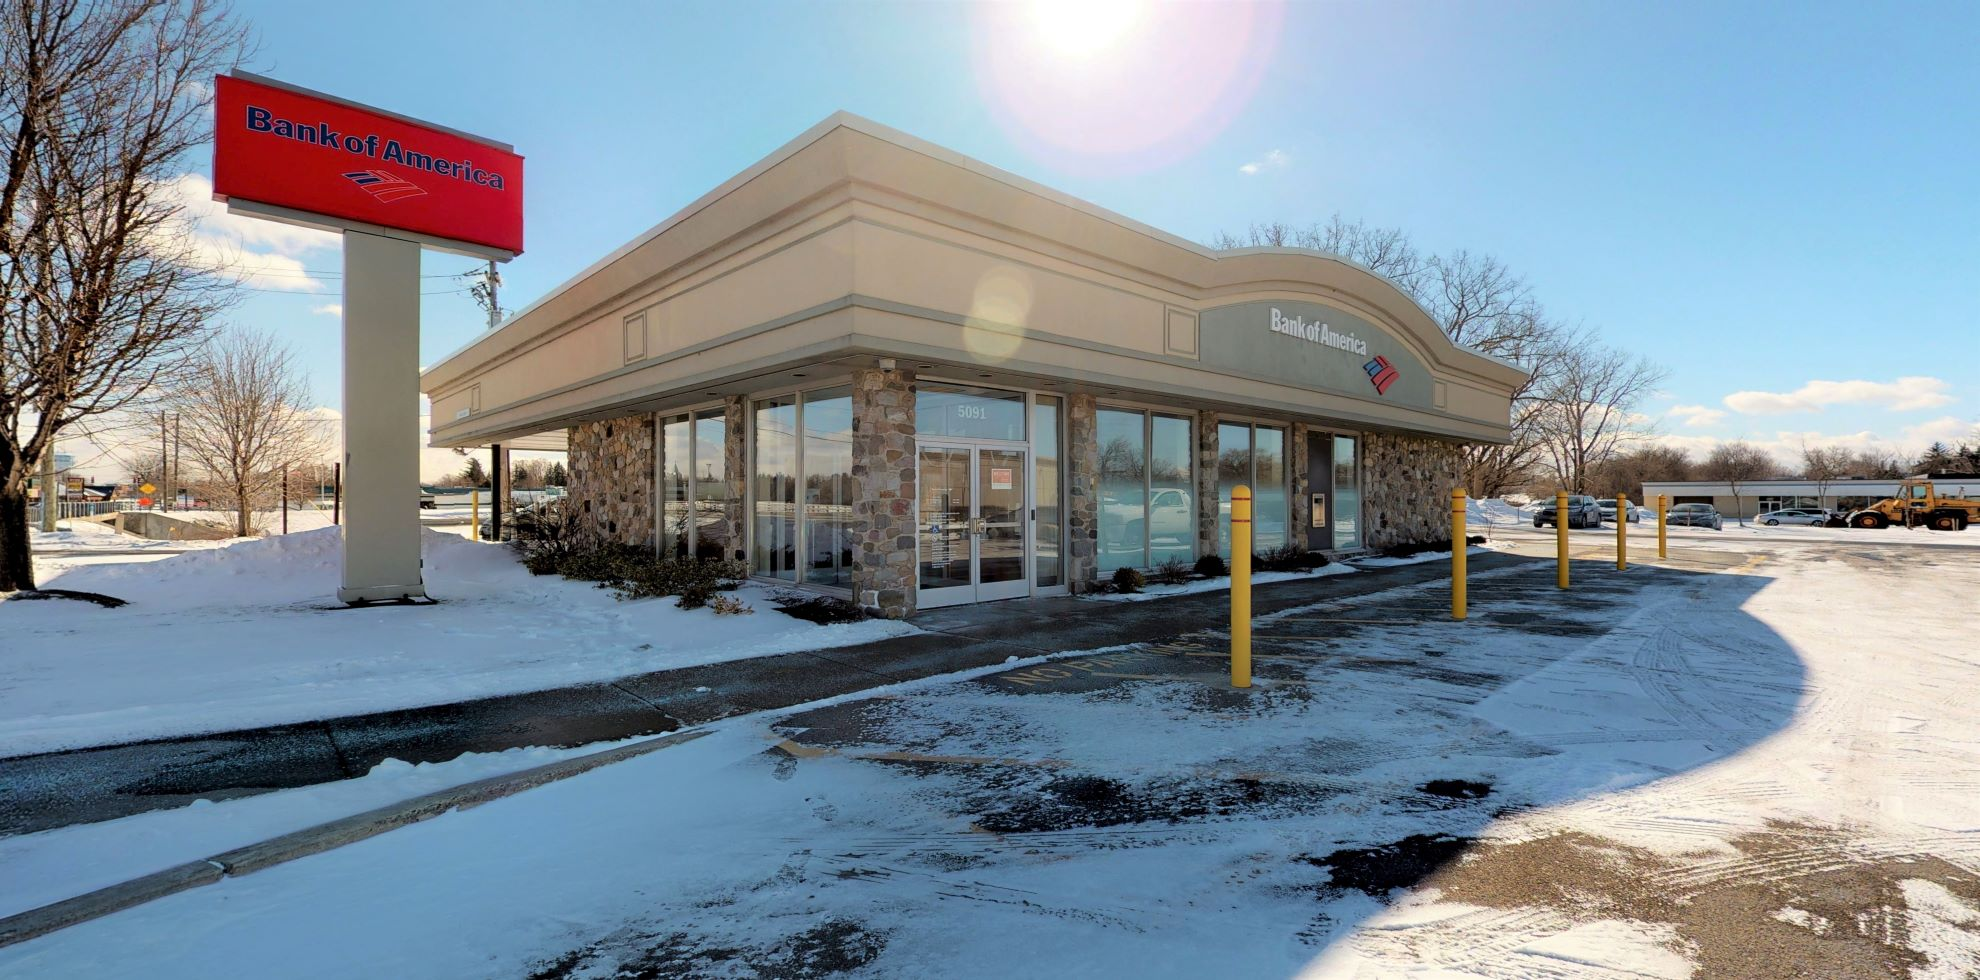 Bank of America financial center with drive-thru ATM | 5091 Broadway, Depew, NY 14043